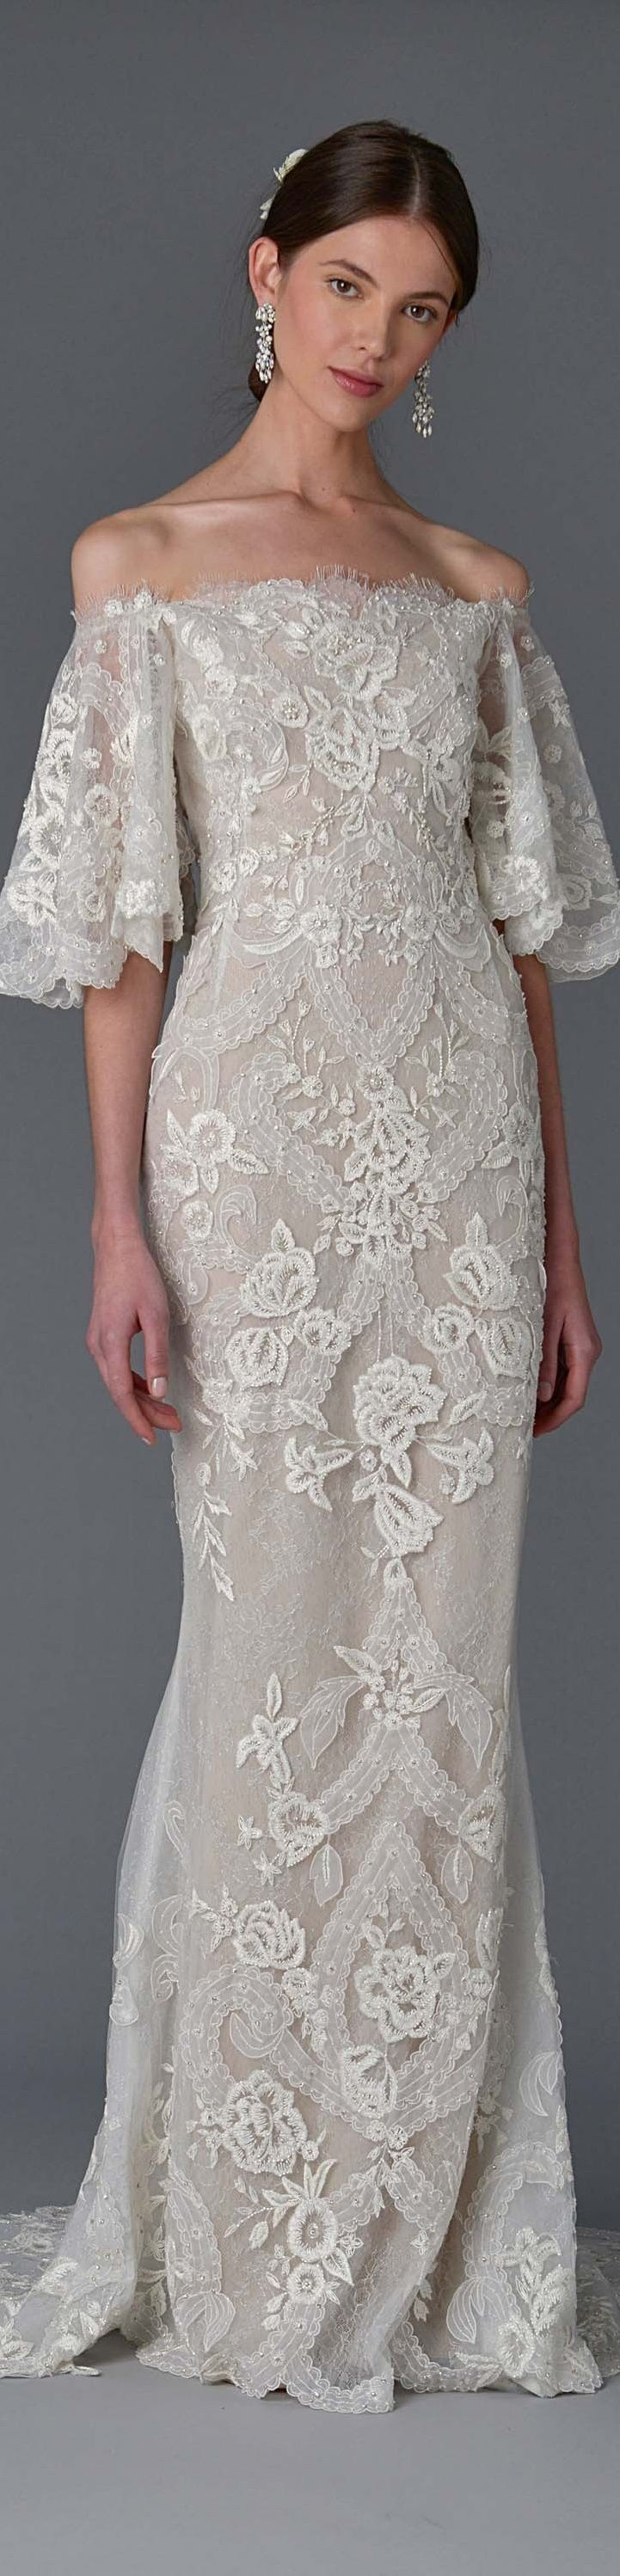 Marchesa Bridal Spring 2017...Beautiful lace for a simple silhouette. Why not recreate this within the budget & wedding theme. Contact us for suggestions.